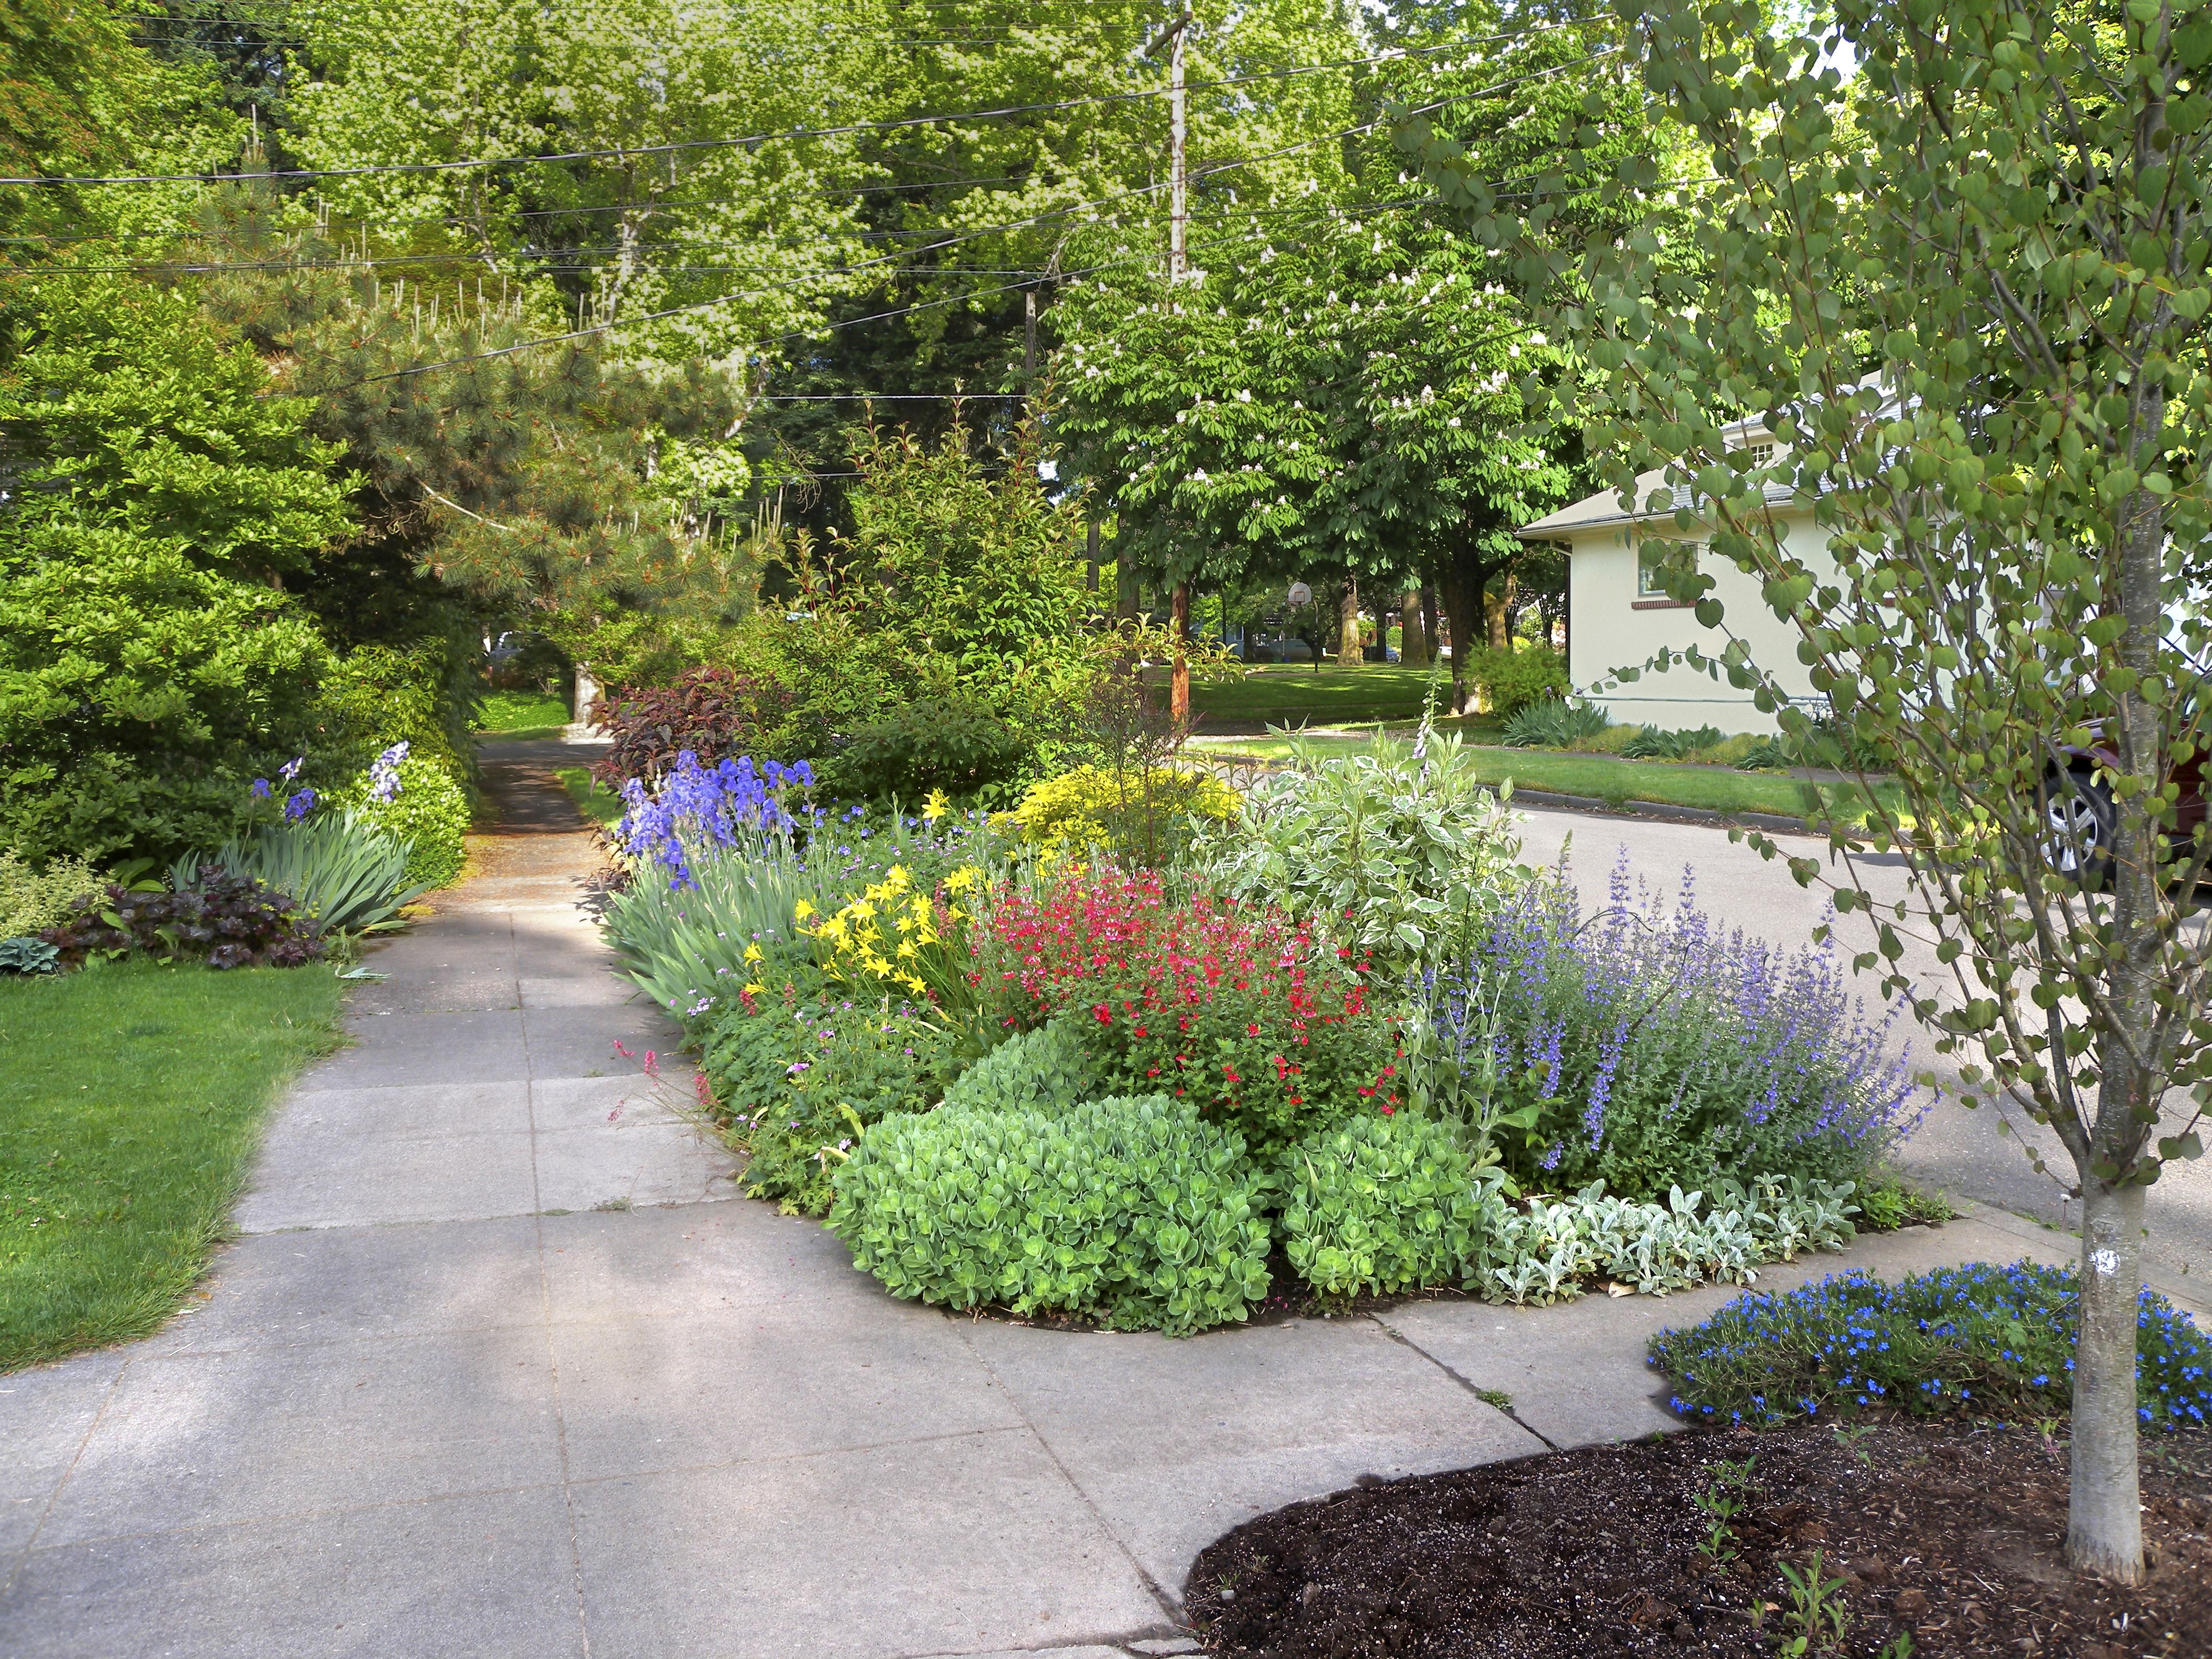 Increase Your Curb Appeal With Tips From Hellstrip Gardening By Evelyn Hadden Available Everywhere Books Privacy Landscaping Lawn Alternatives Amazing Gardens